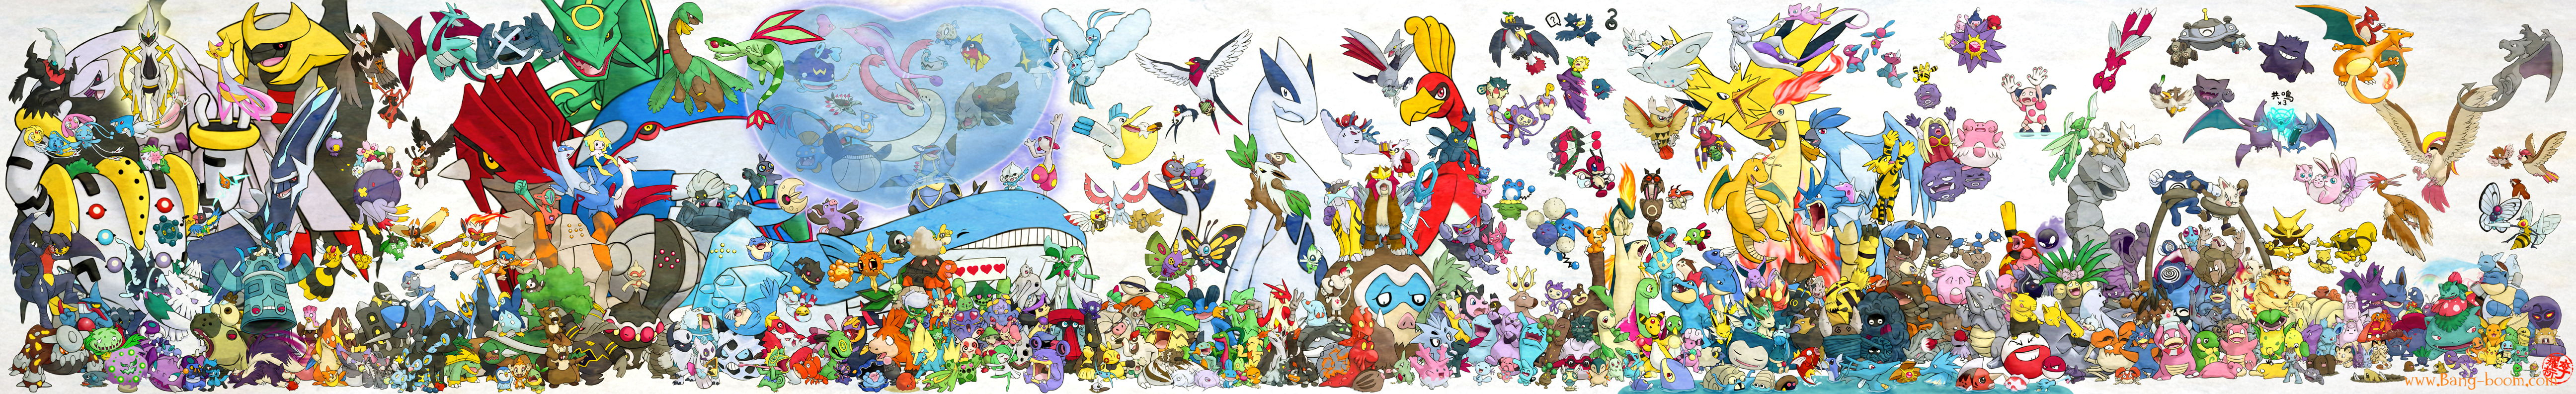 493 Pokemon Assemble by Ninja-Jamal